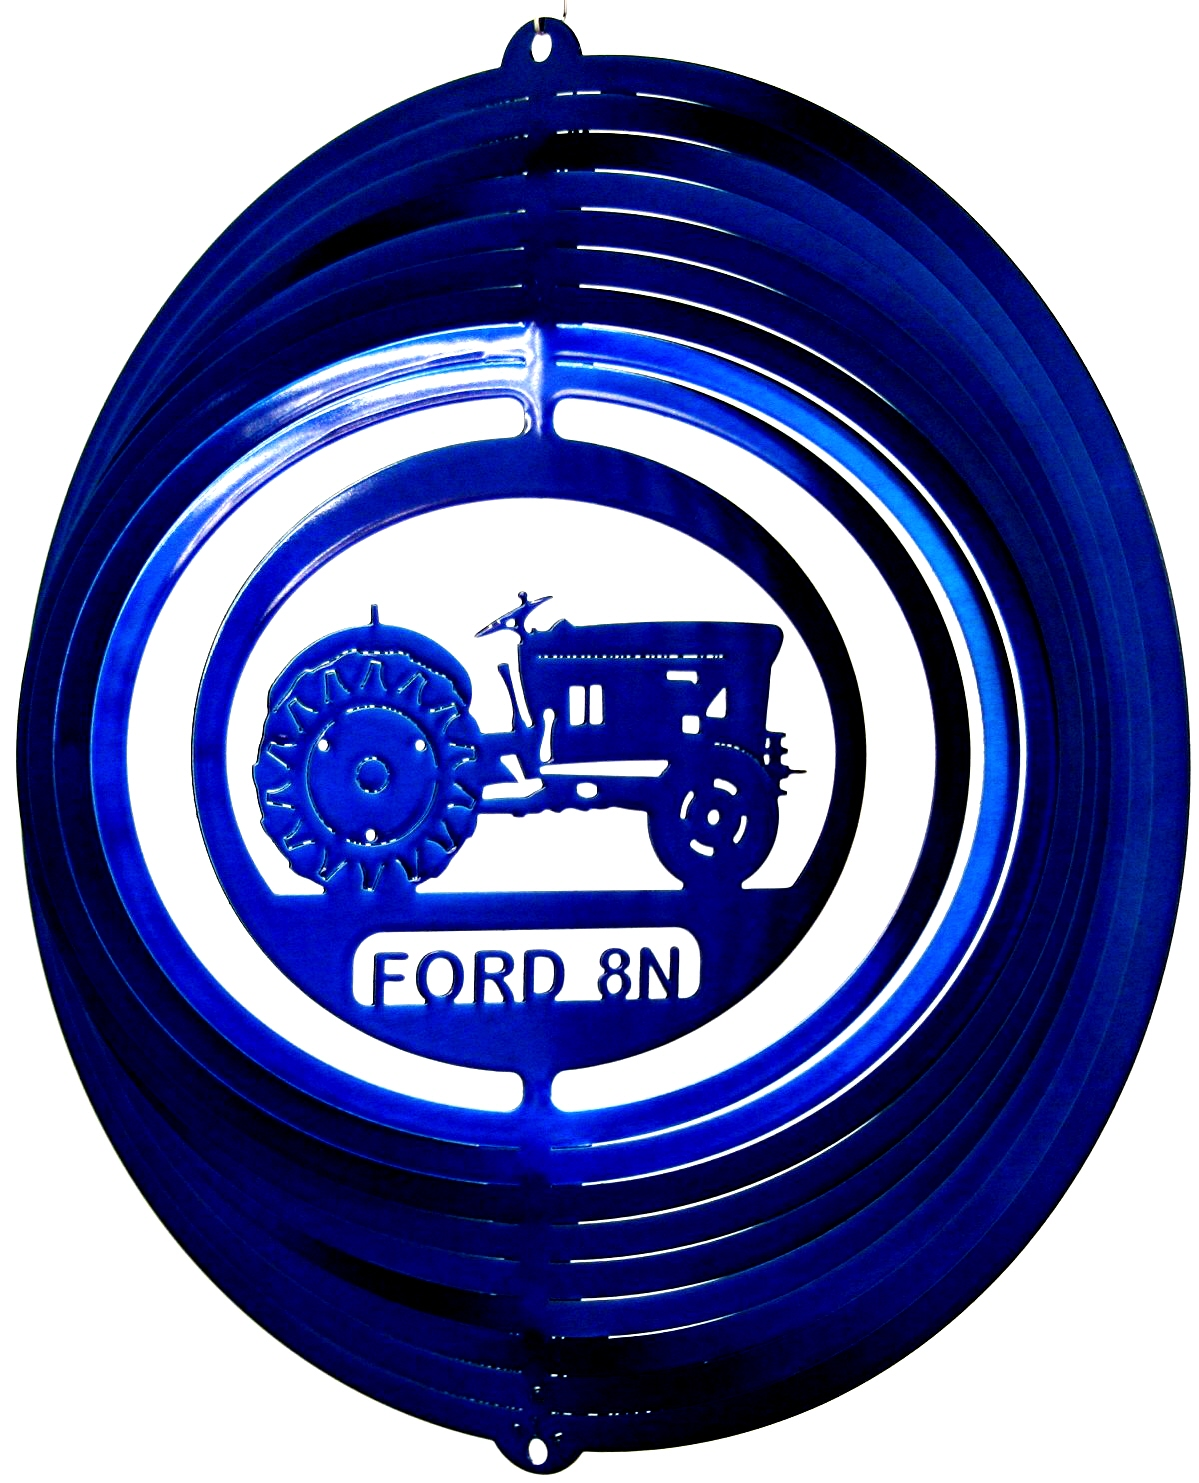 12 INCH TRACTOR FORD 8N WIND SPINNER